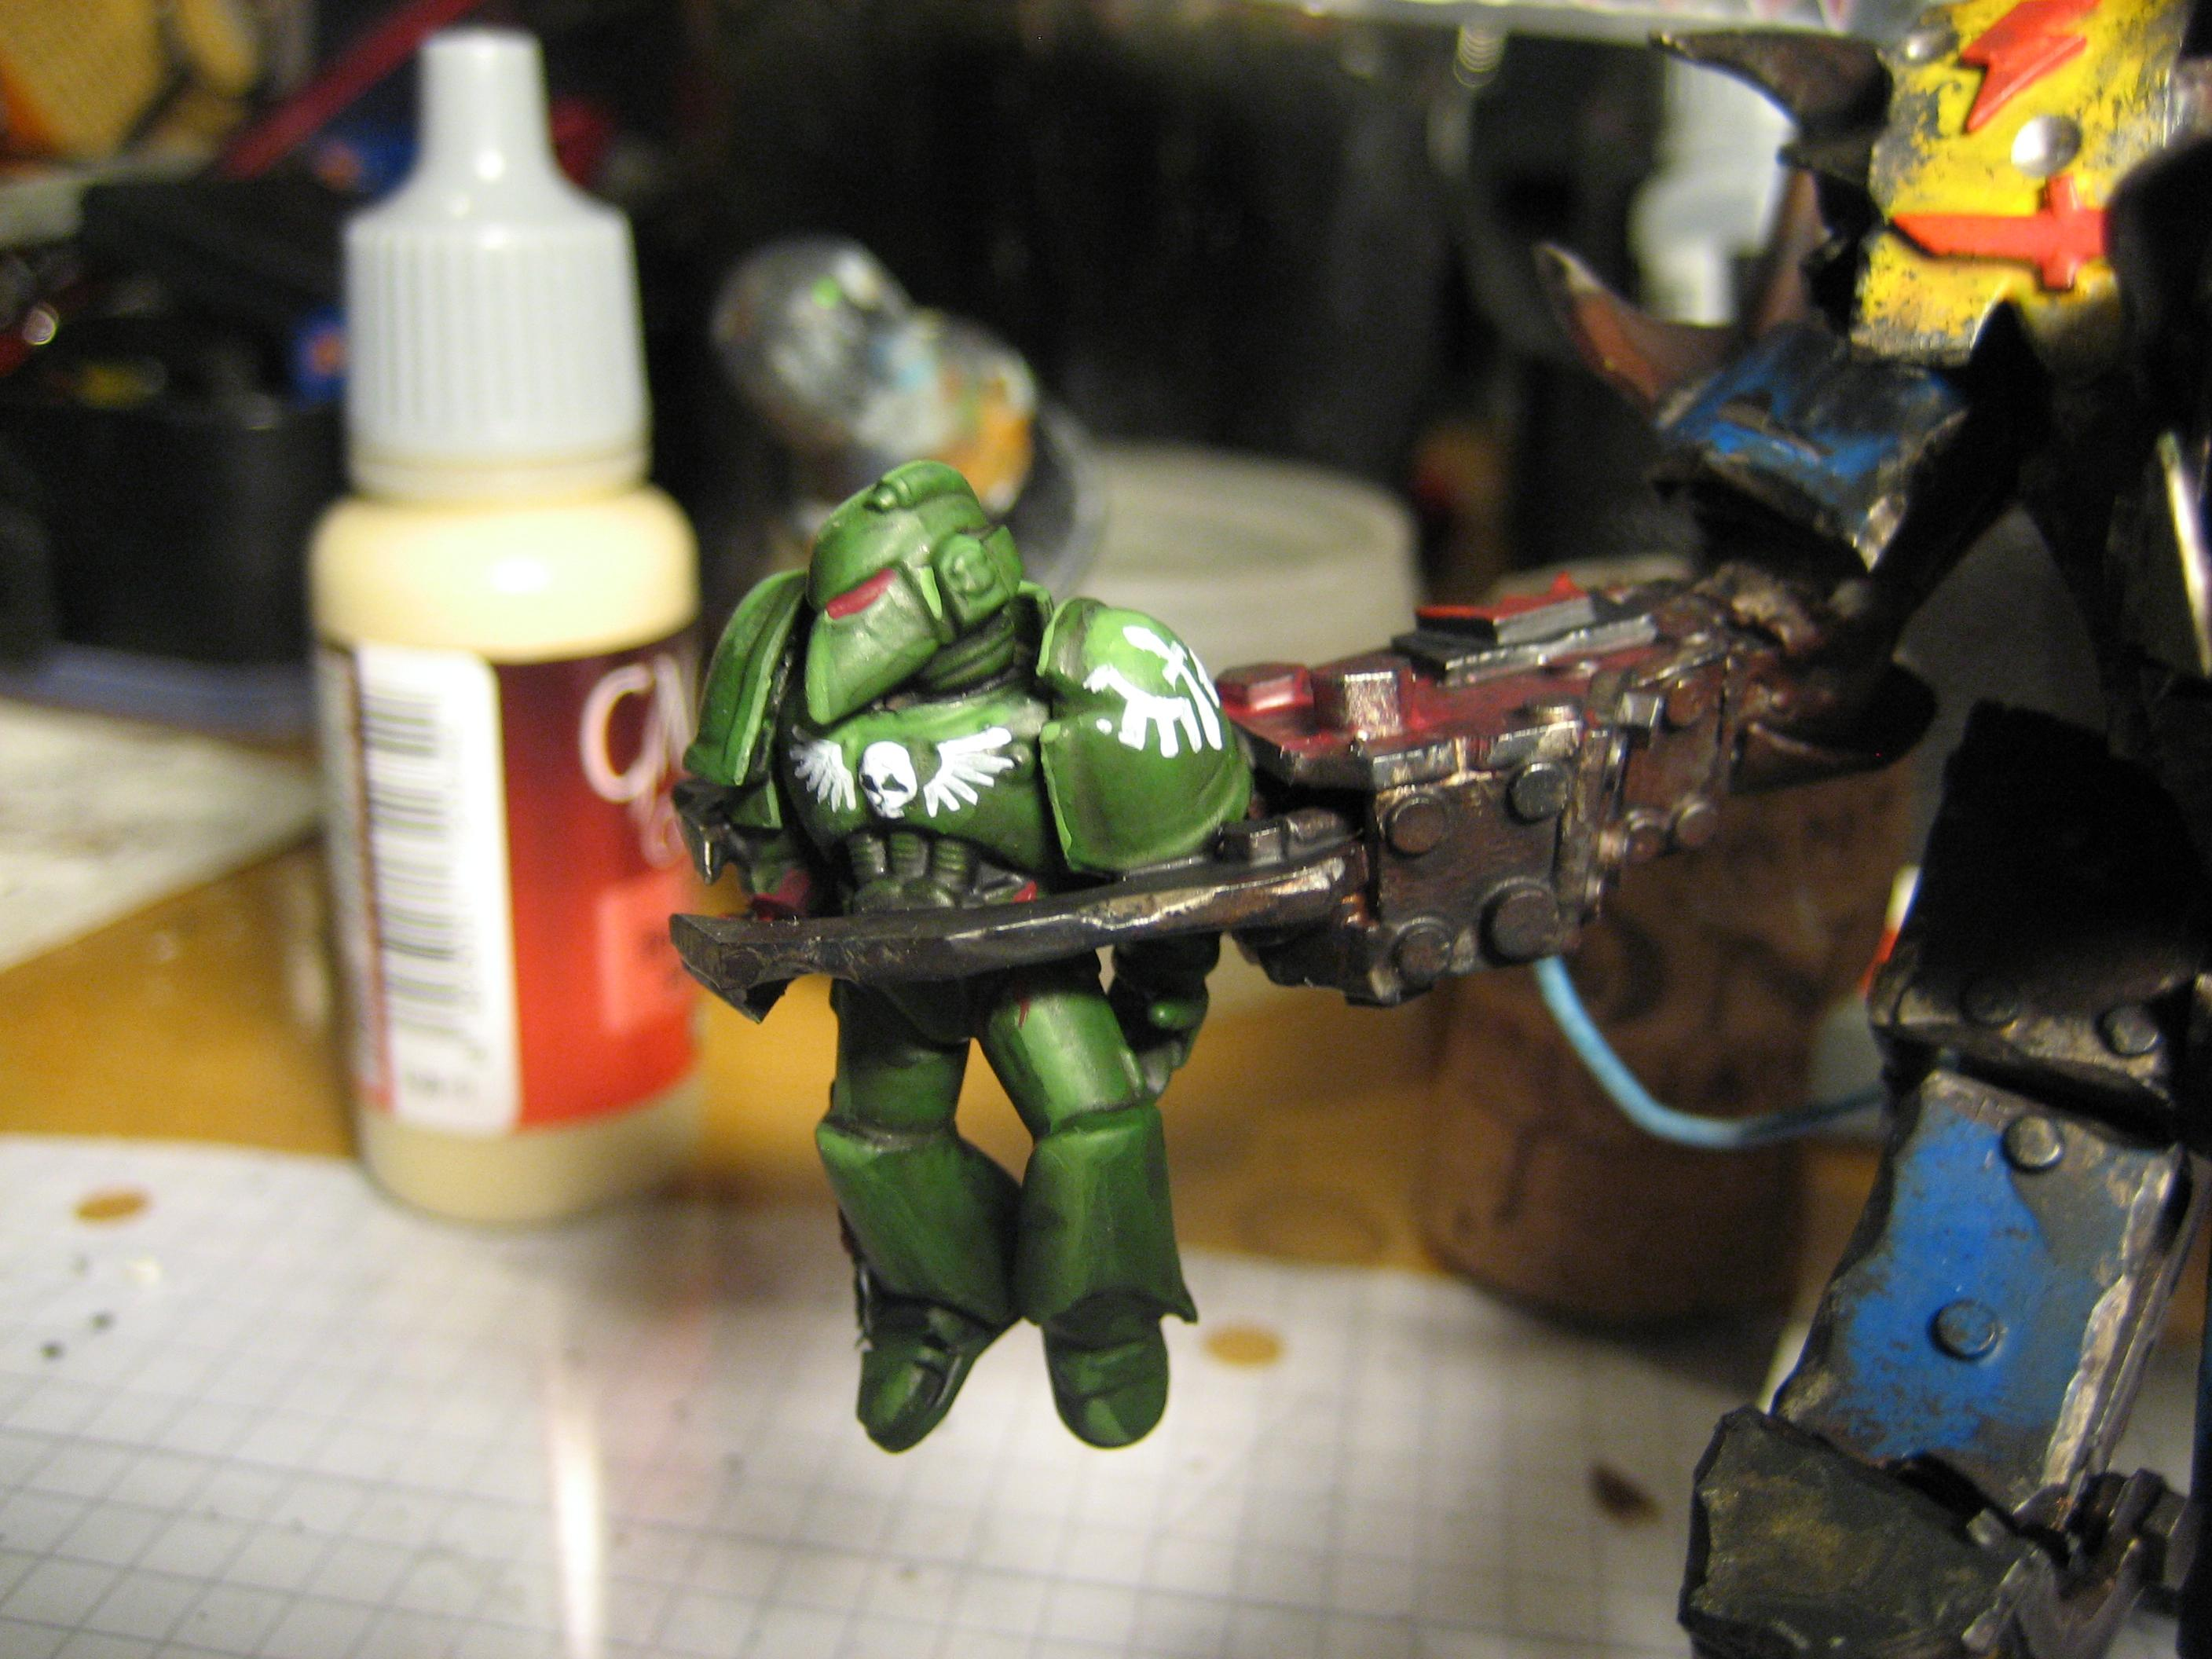 Claw Of Death, Dead Space Marine, Death, Goodbye, Homicide